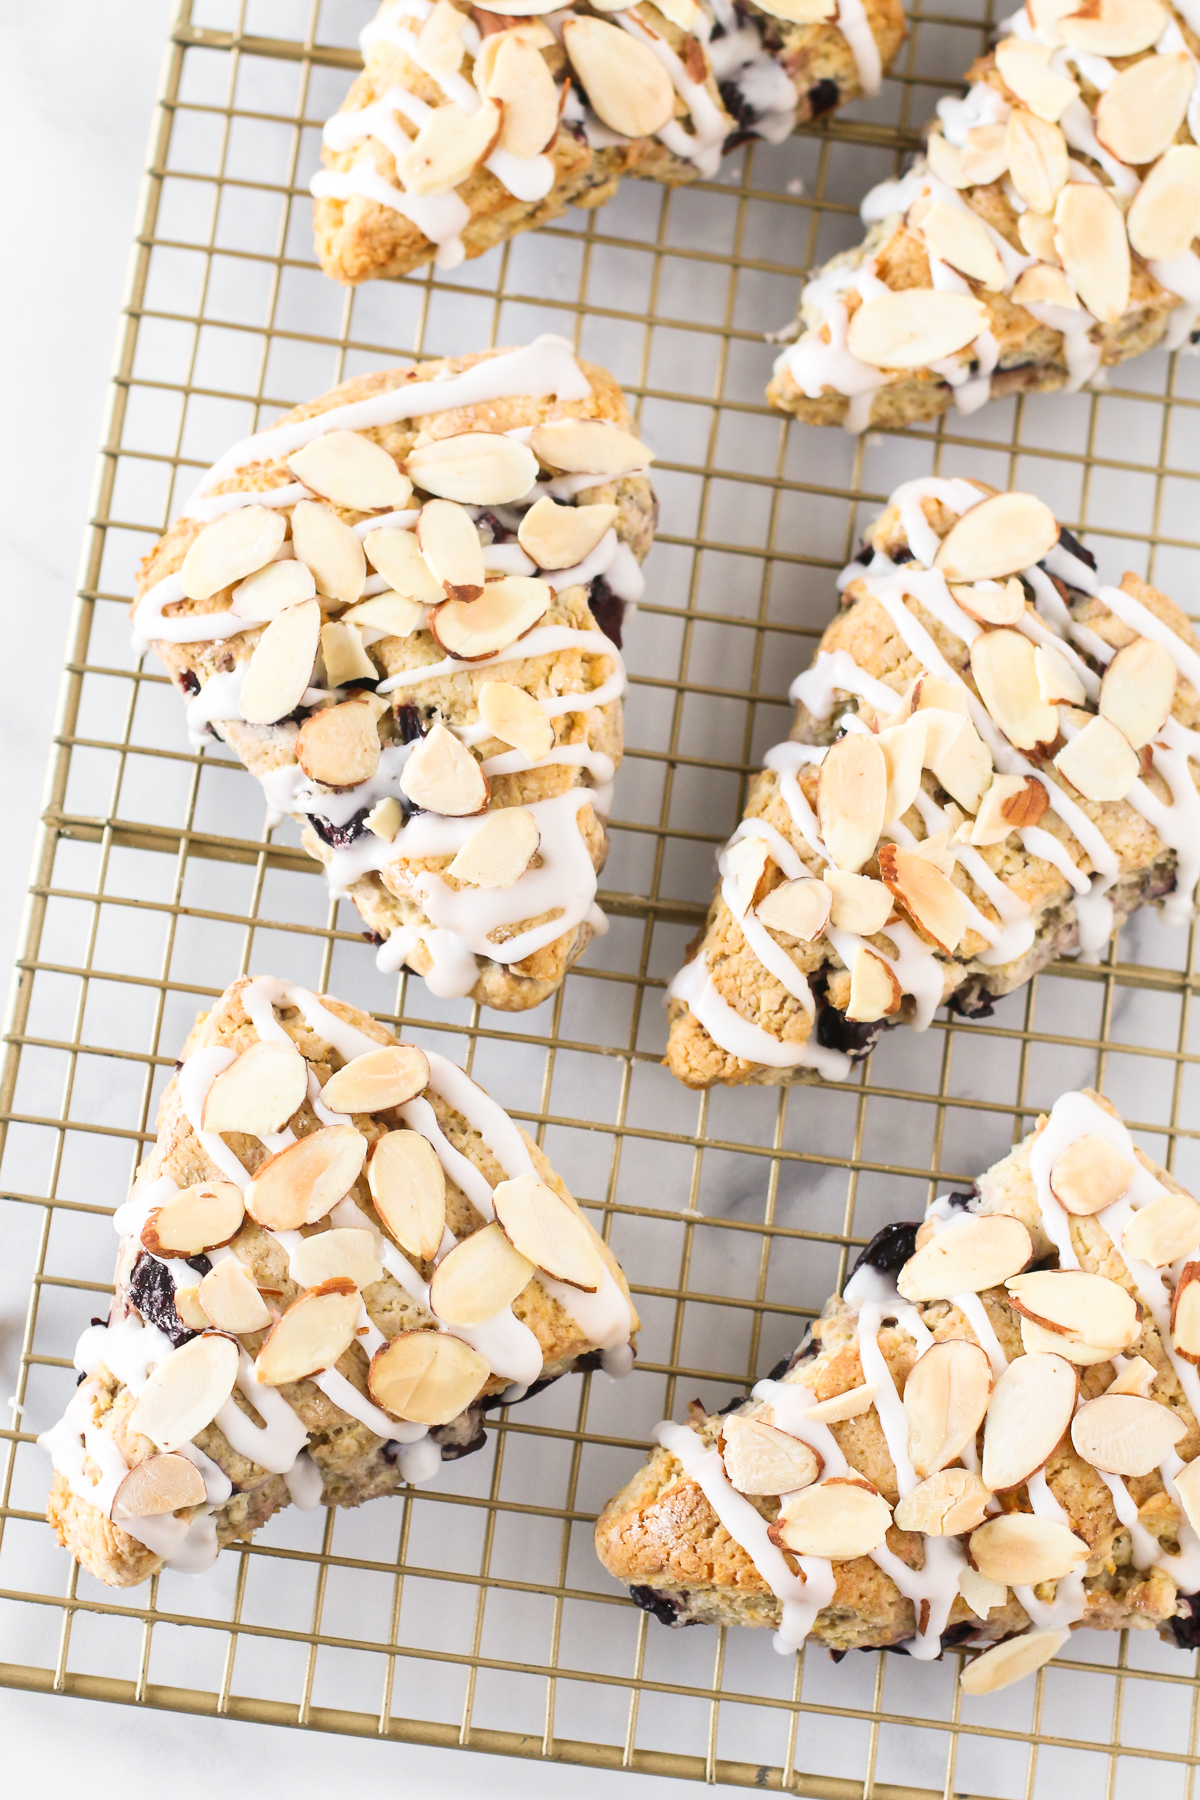 Gluten Free Vegan Cherry Almond Scones. Tender scones with black cherries. The simple glaze and toasted almonds are the perfect topping!